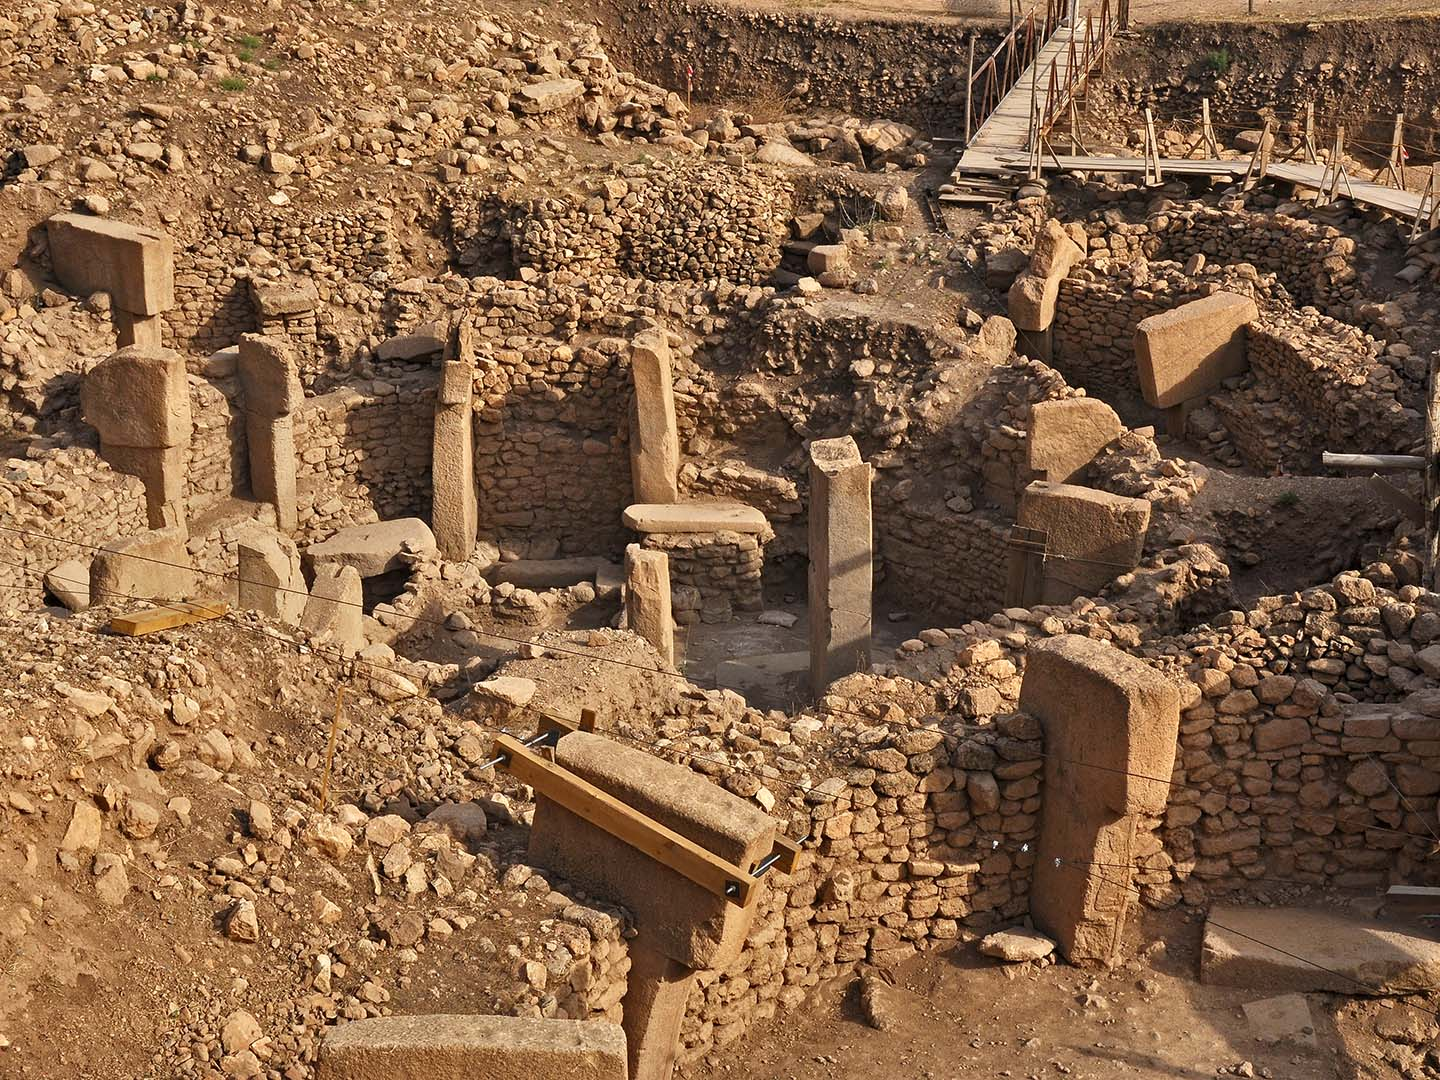 Findings in Göbeklitepe